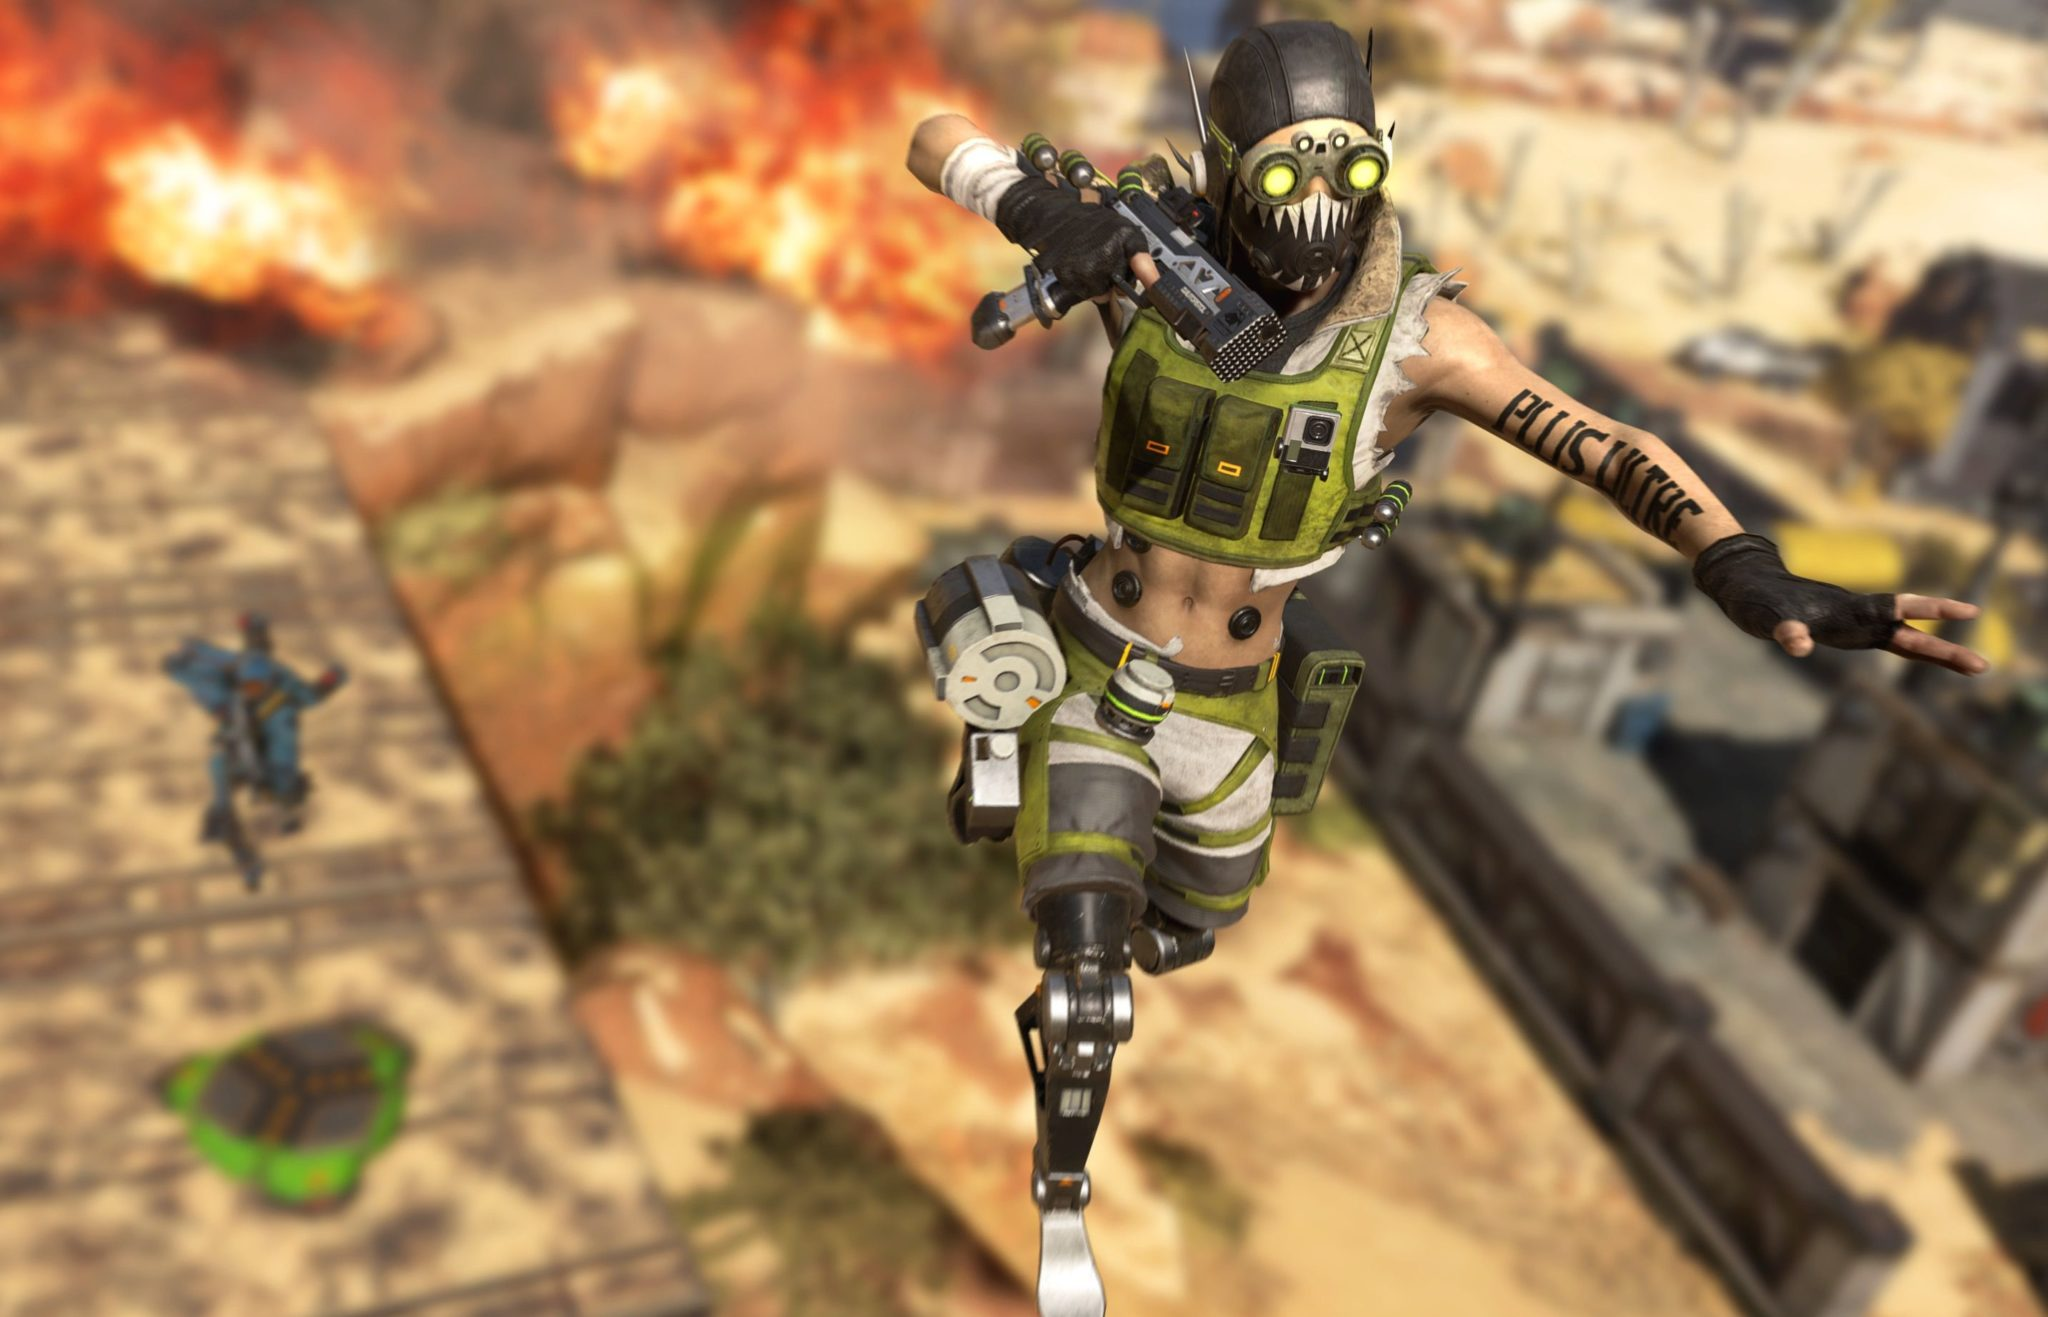 Octane using his Jump Pad in Apex Legends.